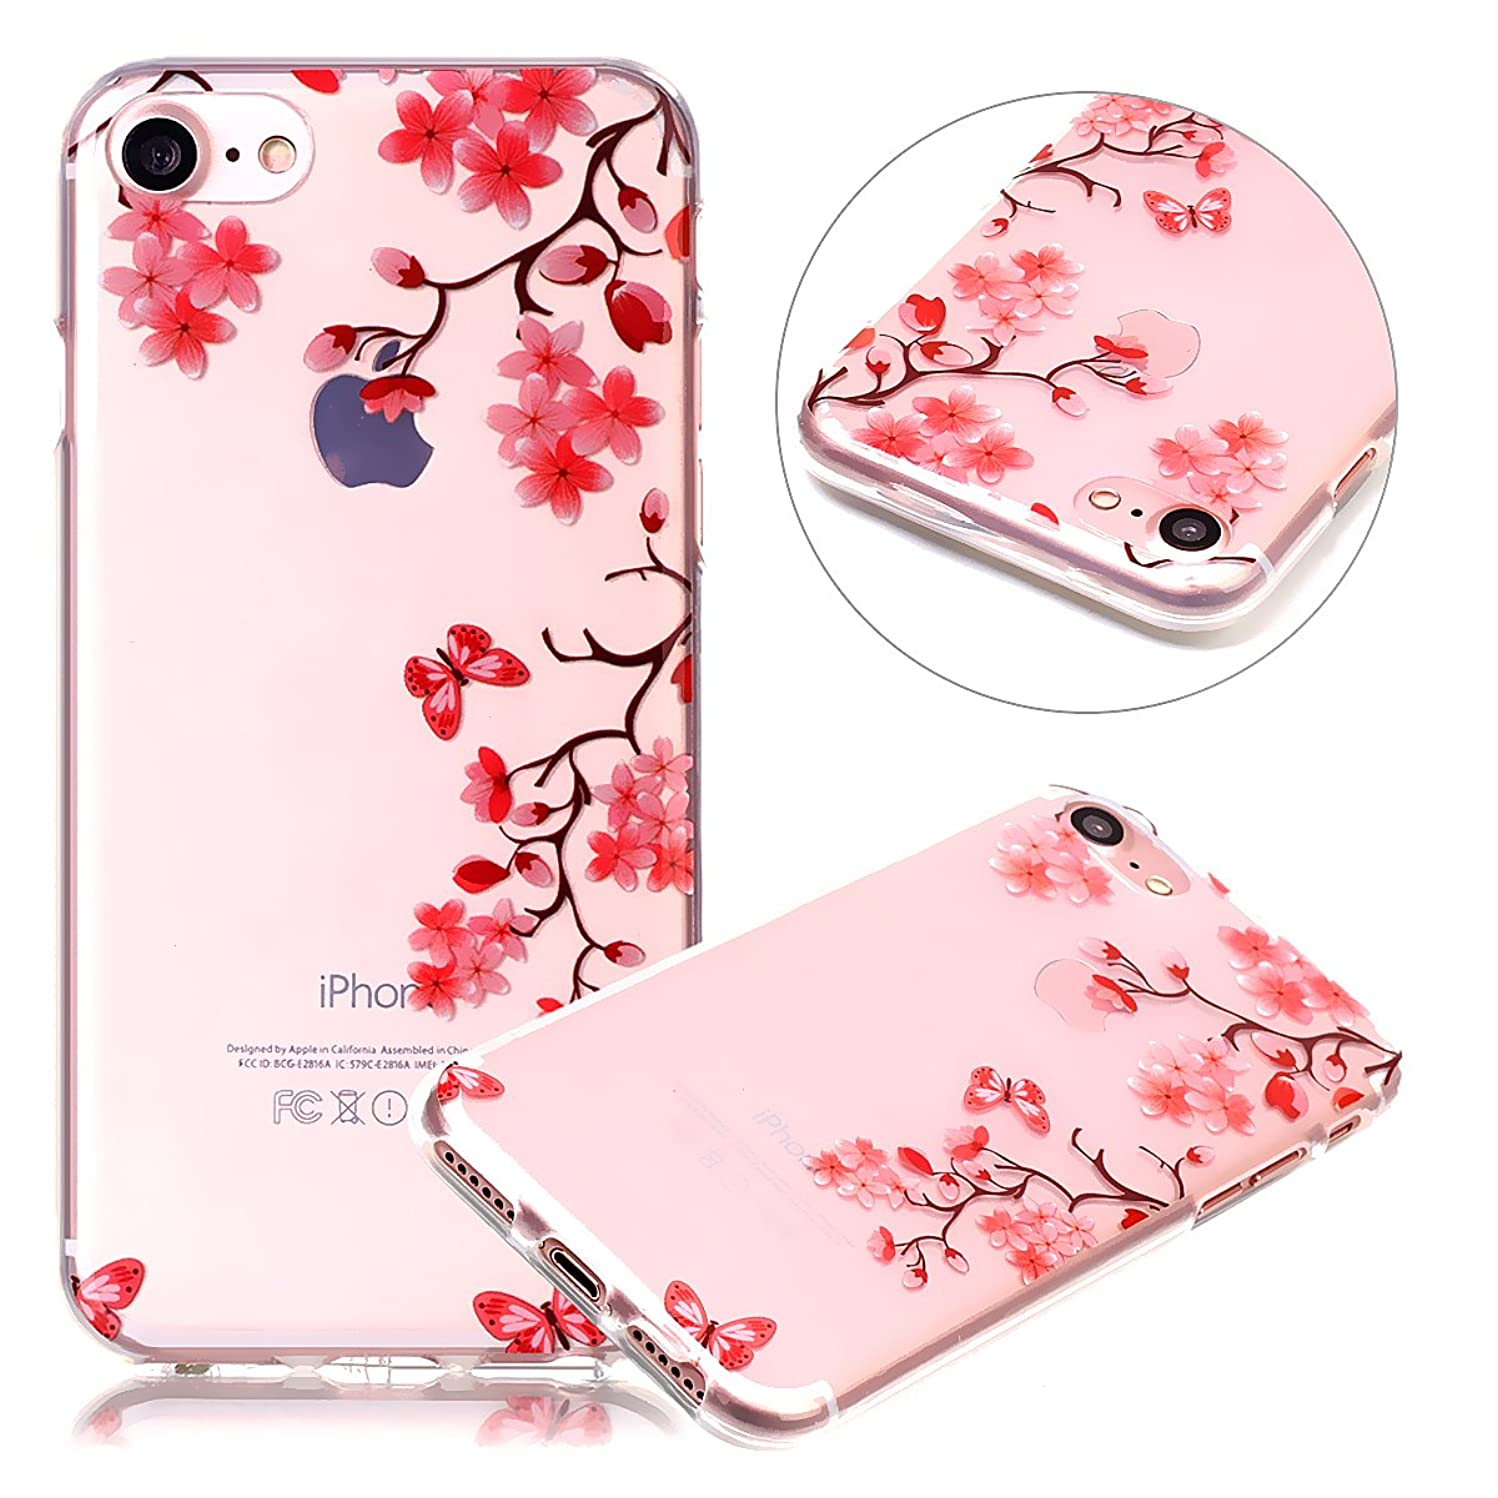 PHEZEN iPhone 5C Case, iPhone 5C Clear TPU Case, Pink Flower Floral Design Ultra Thin Anti-Scratch Flexible TPU Gel Rubber Soft Skin Silicone Protective Case Cover for iPhone 5C